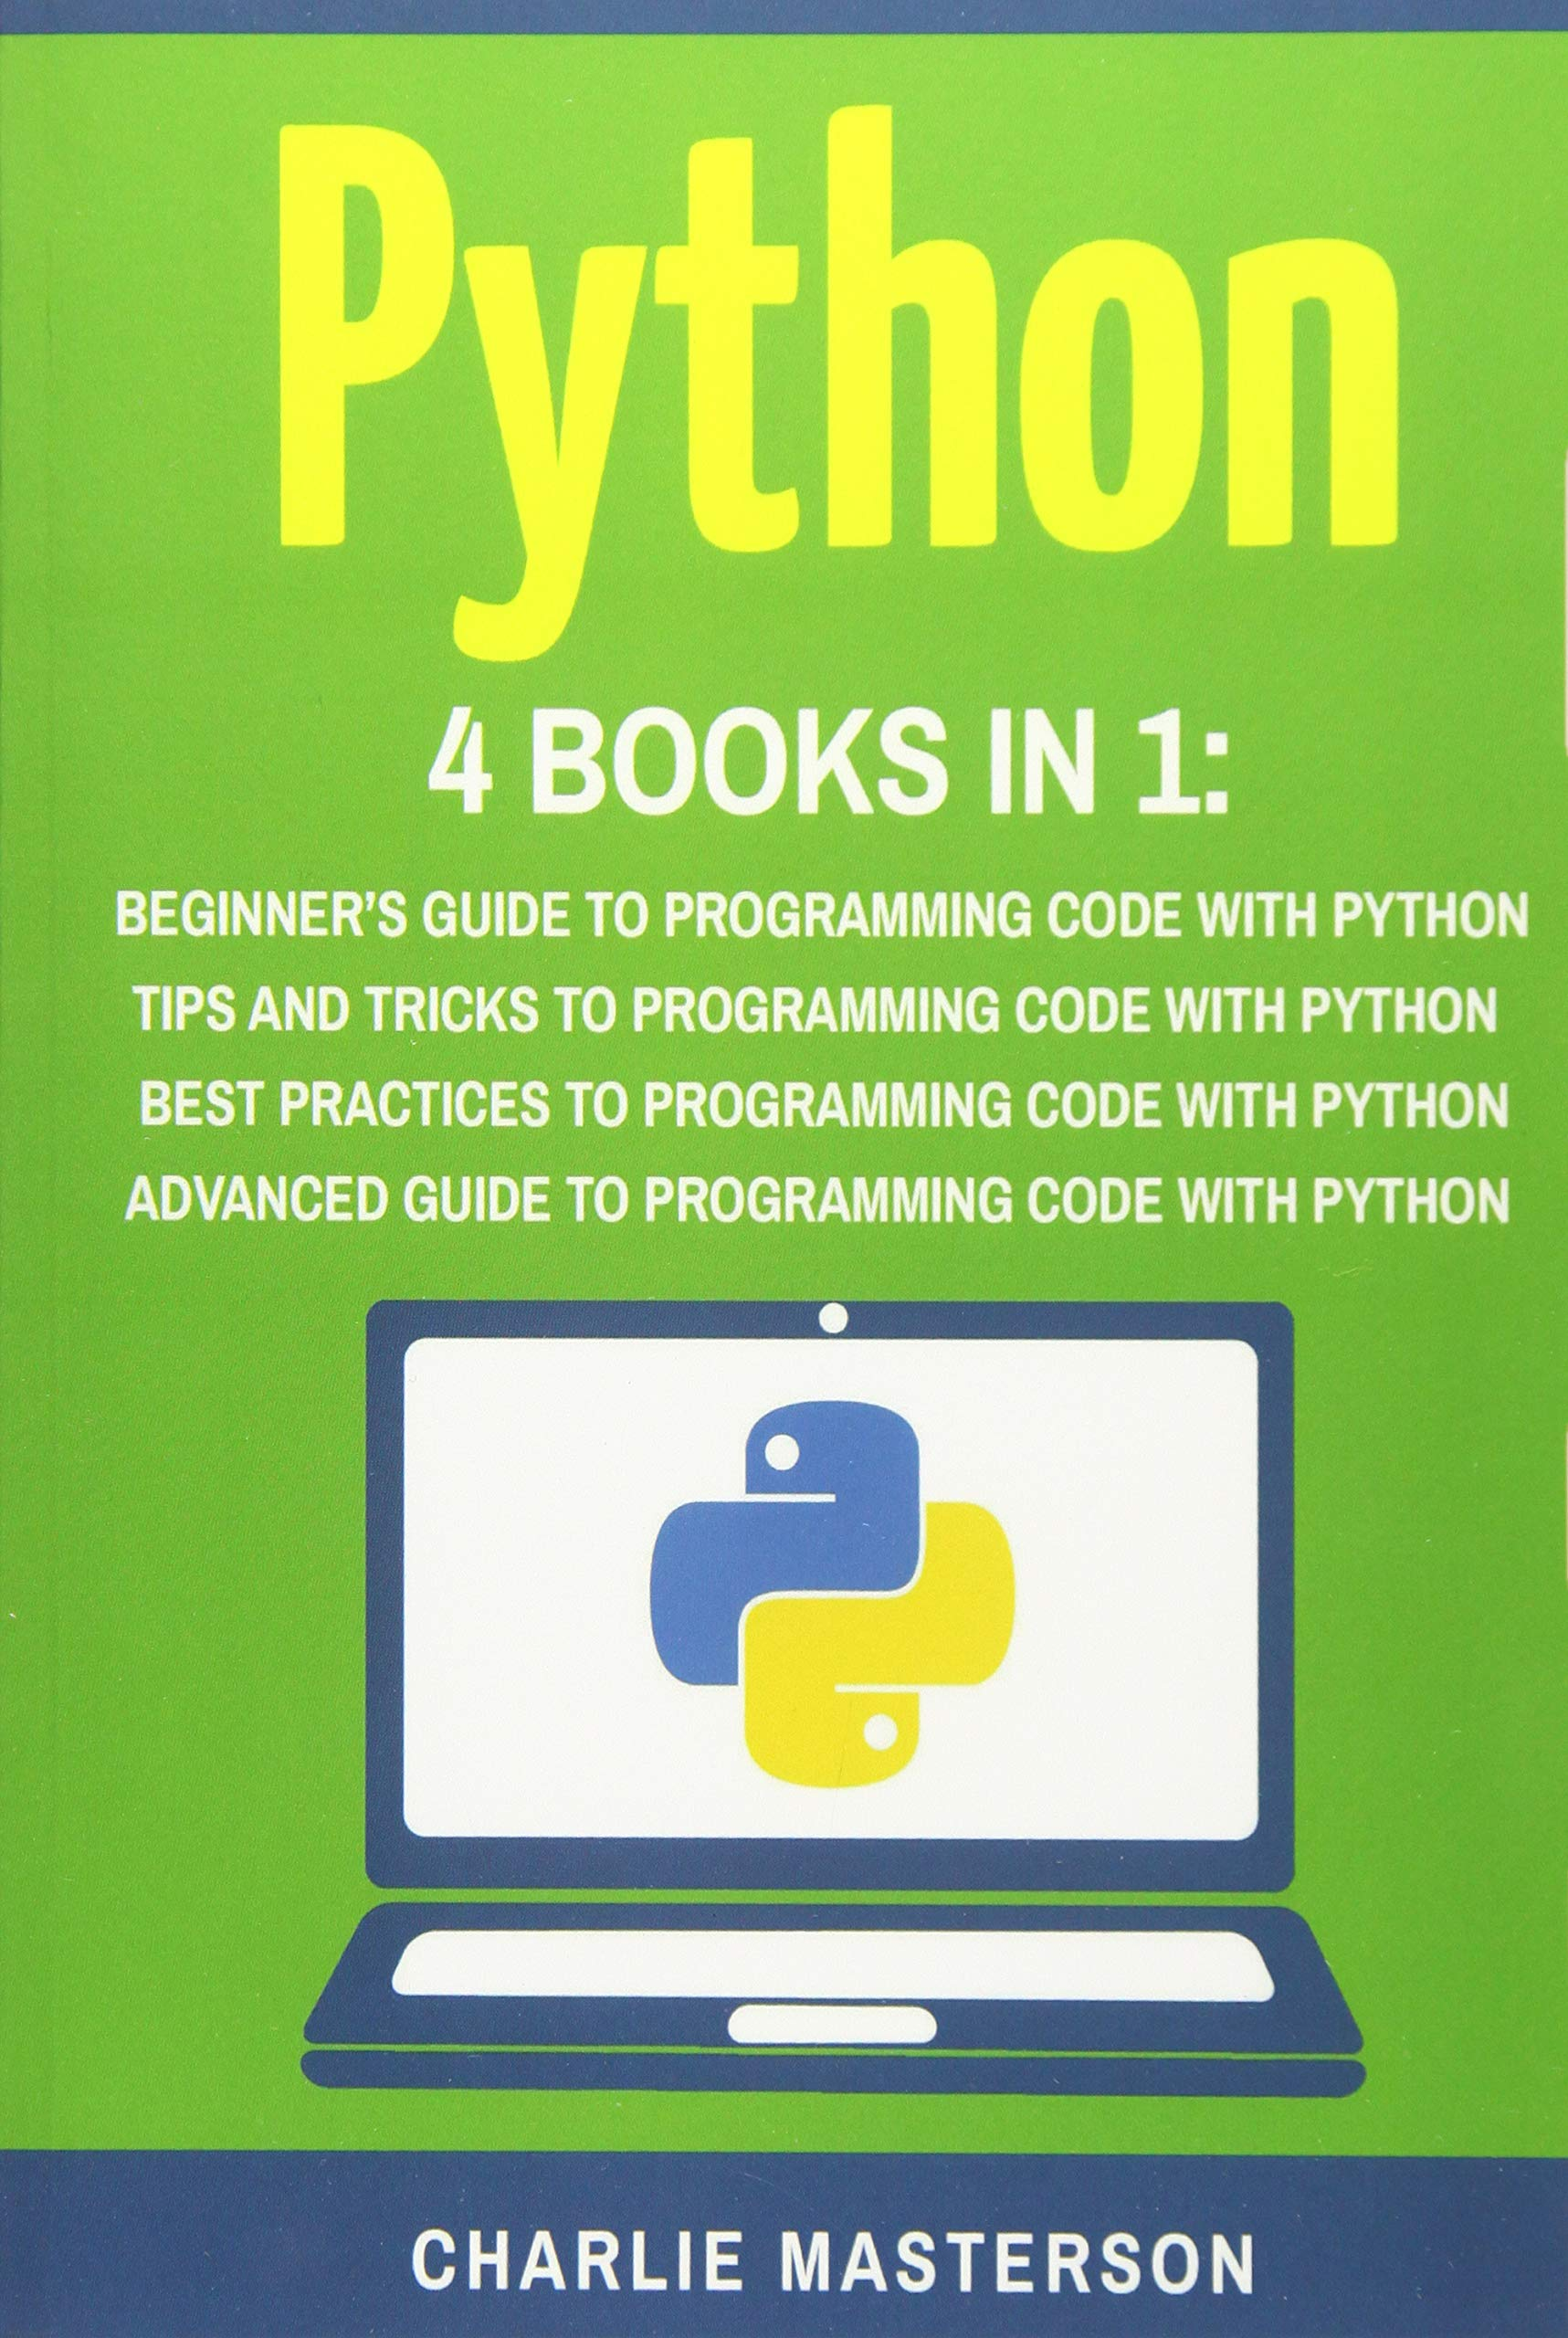 Python: 4 Books in 1: Beginner's Guide + Tips and Tricks +